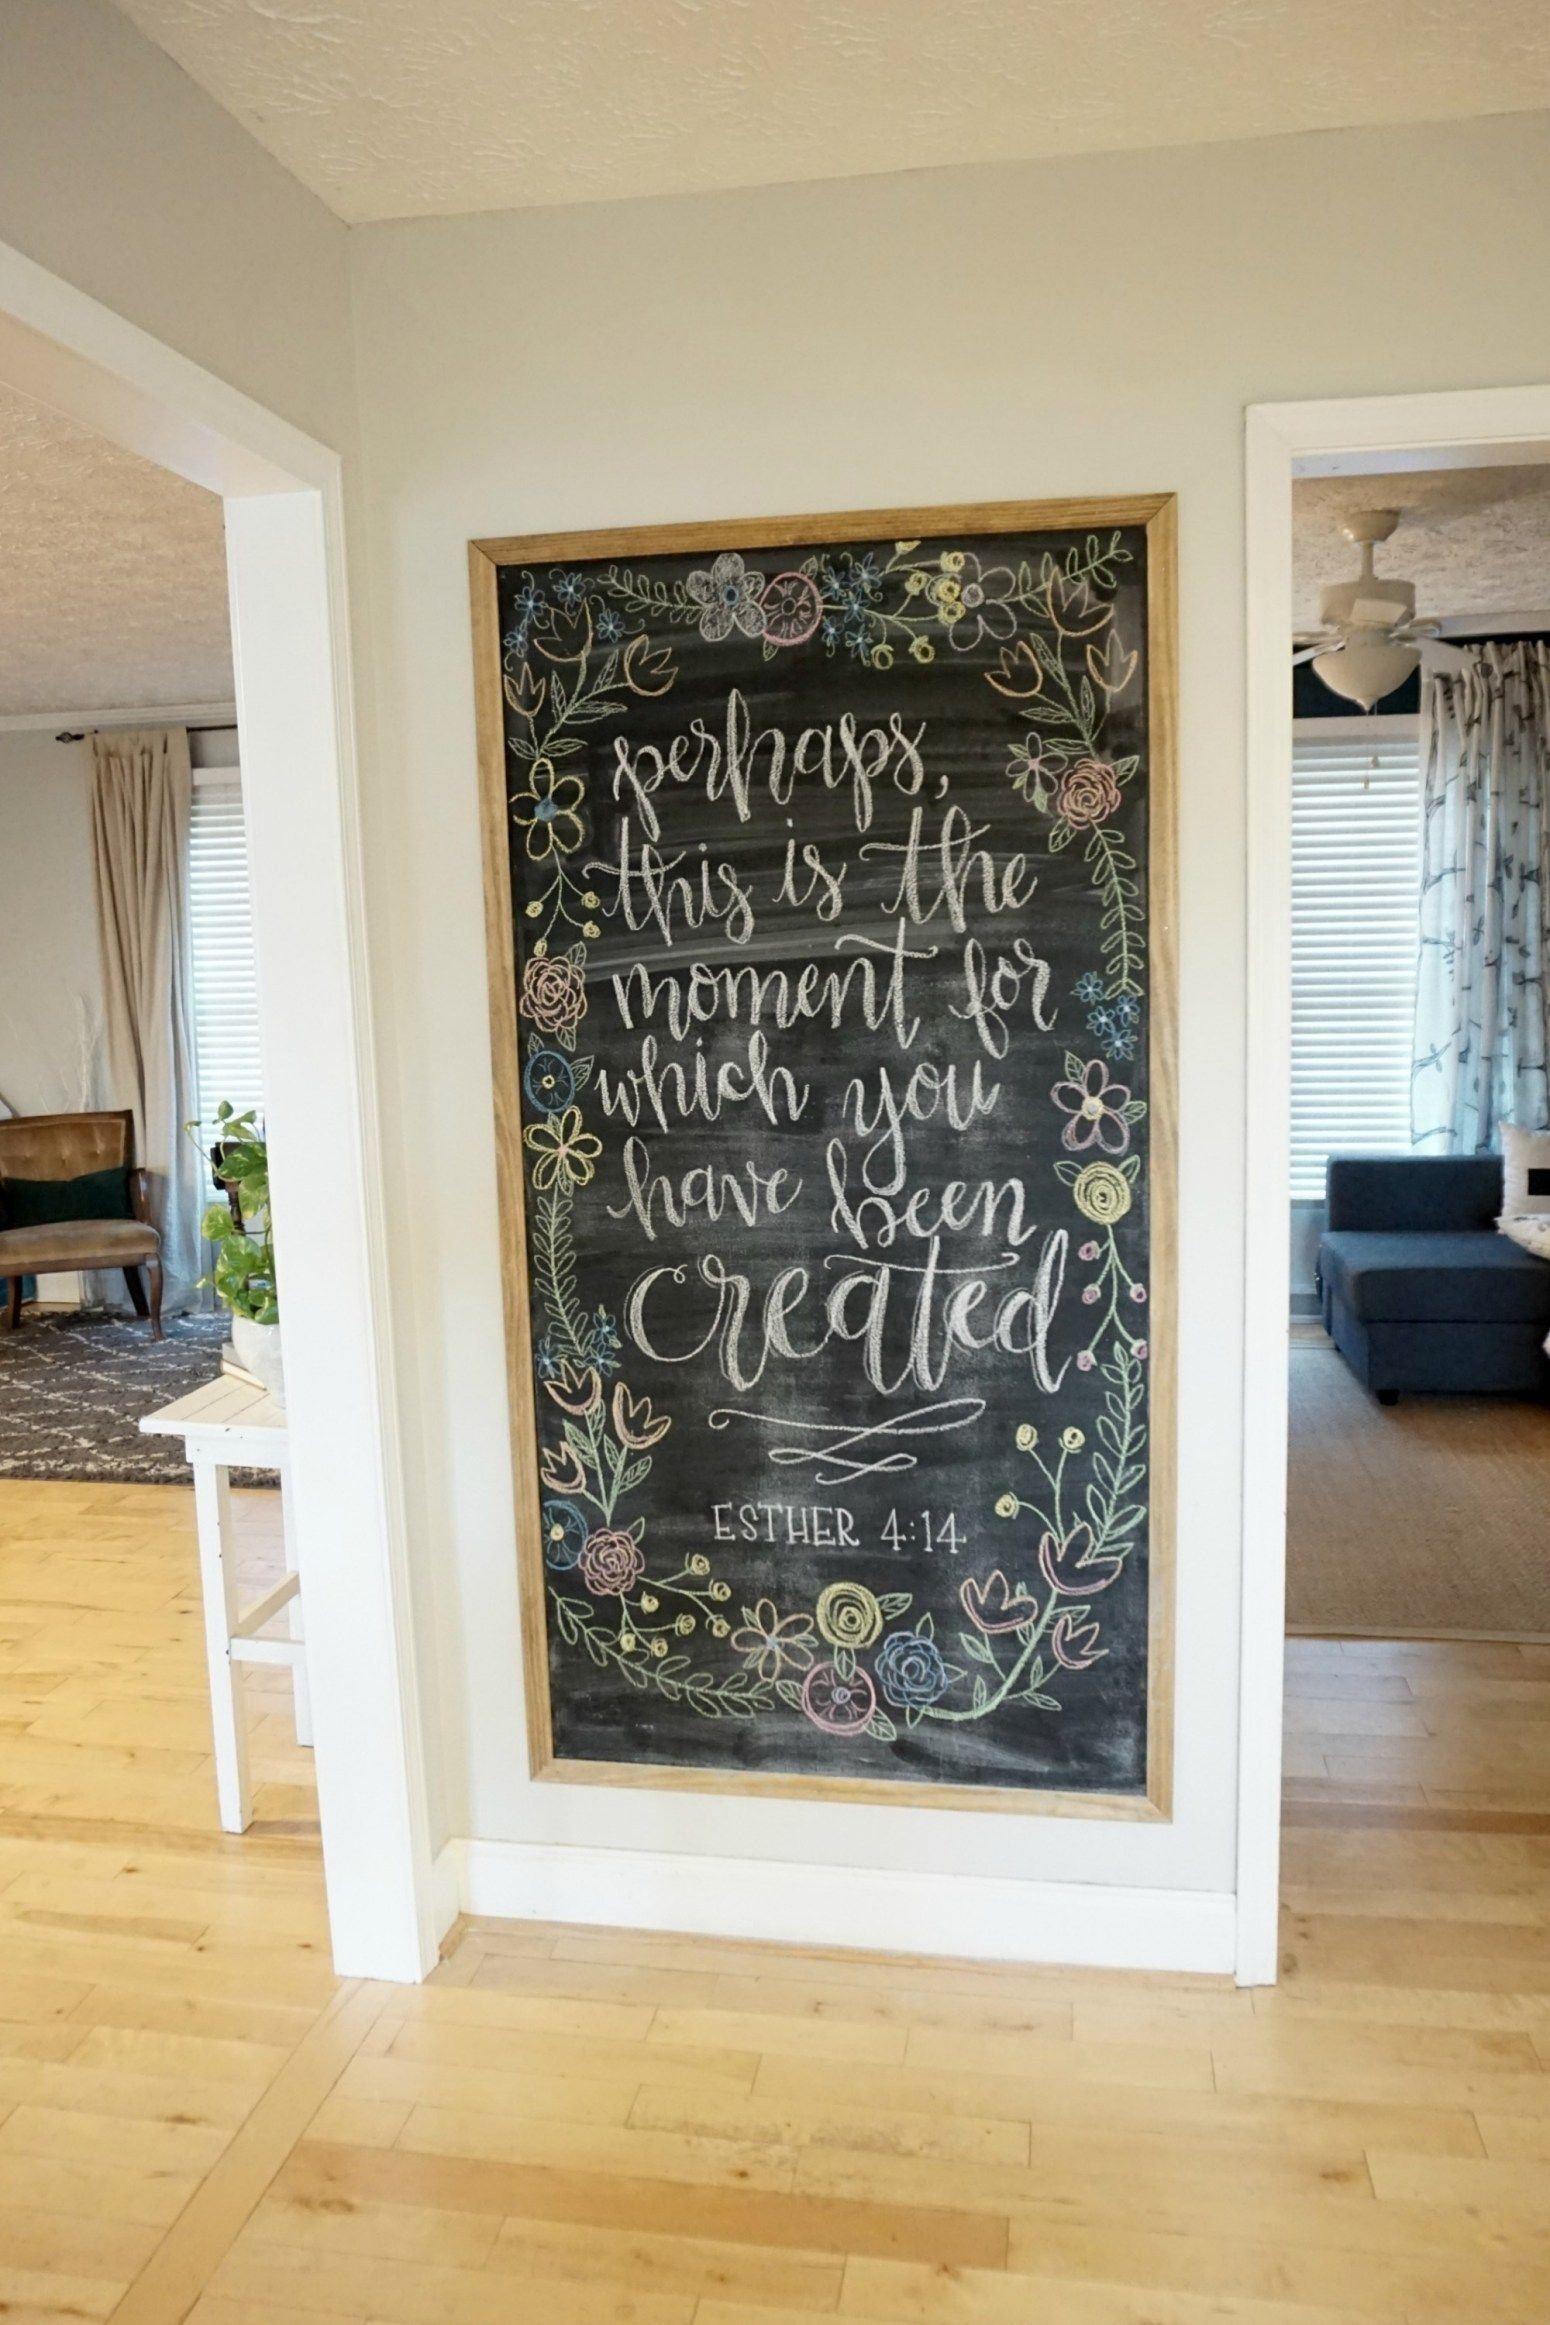 12 affordable ideas for large wall decor | decorate large walls, big